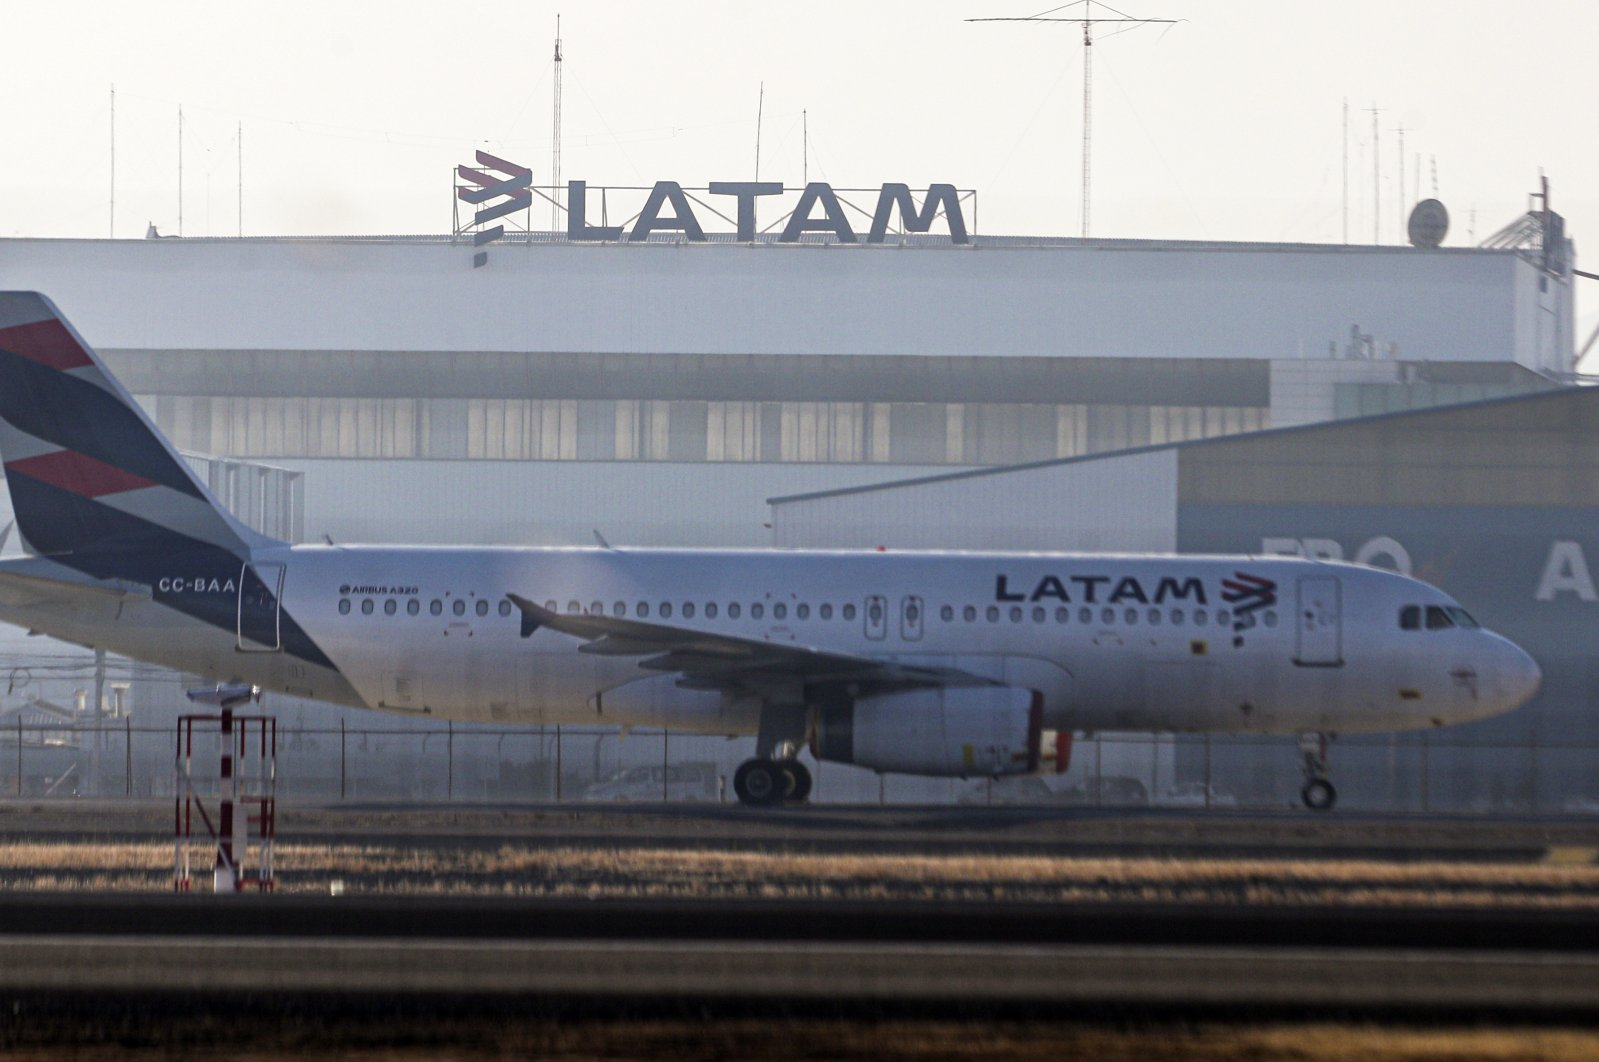 A Latam airplane sits parked at the Arturo Merino Benitez airport in Santiago, Chile, Tuesday, May 26, 2020. (AP Photo)